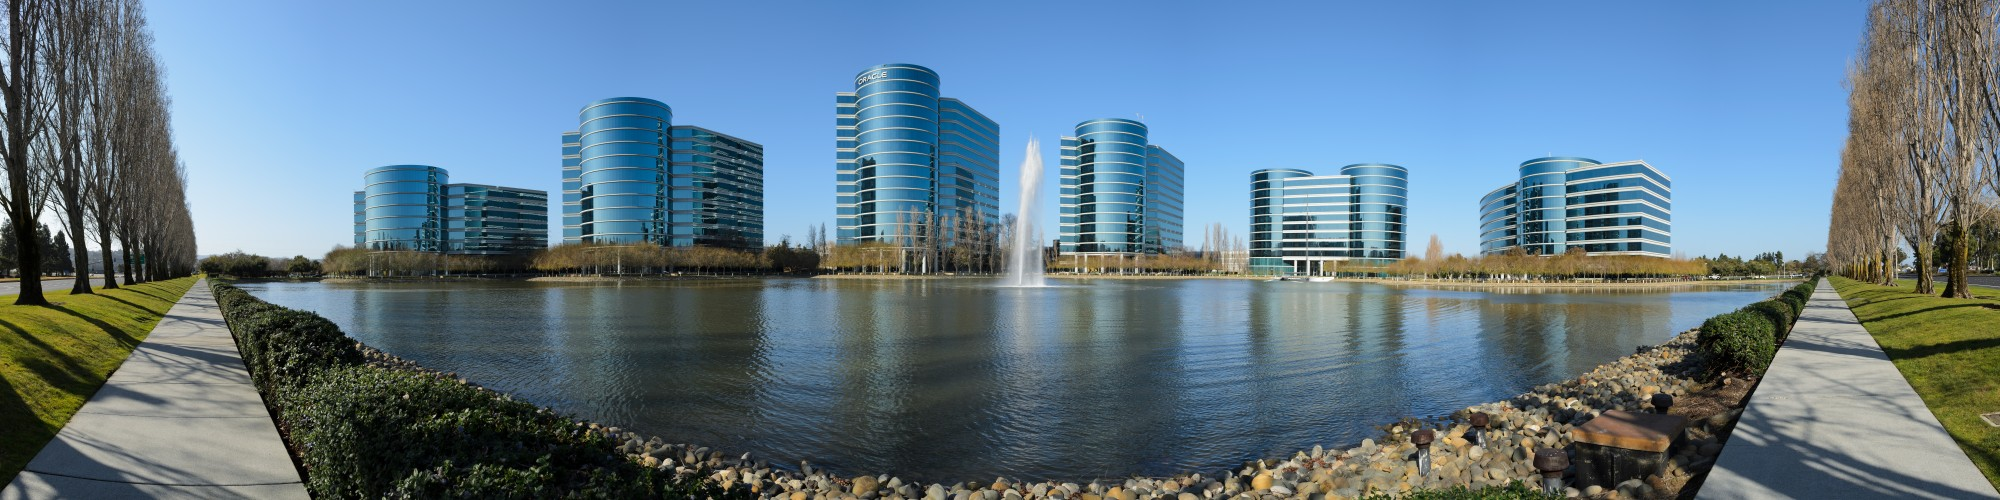 Oracle Redwood City February 2013 panorama